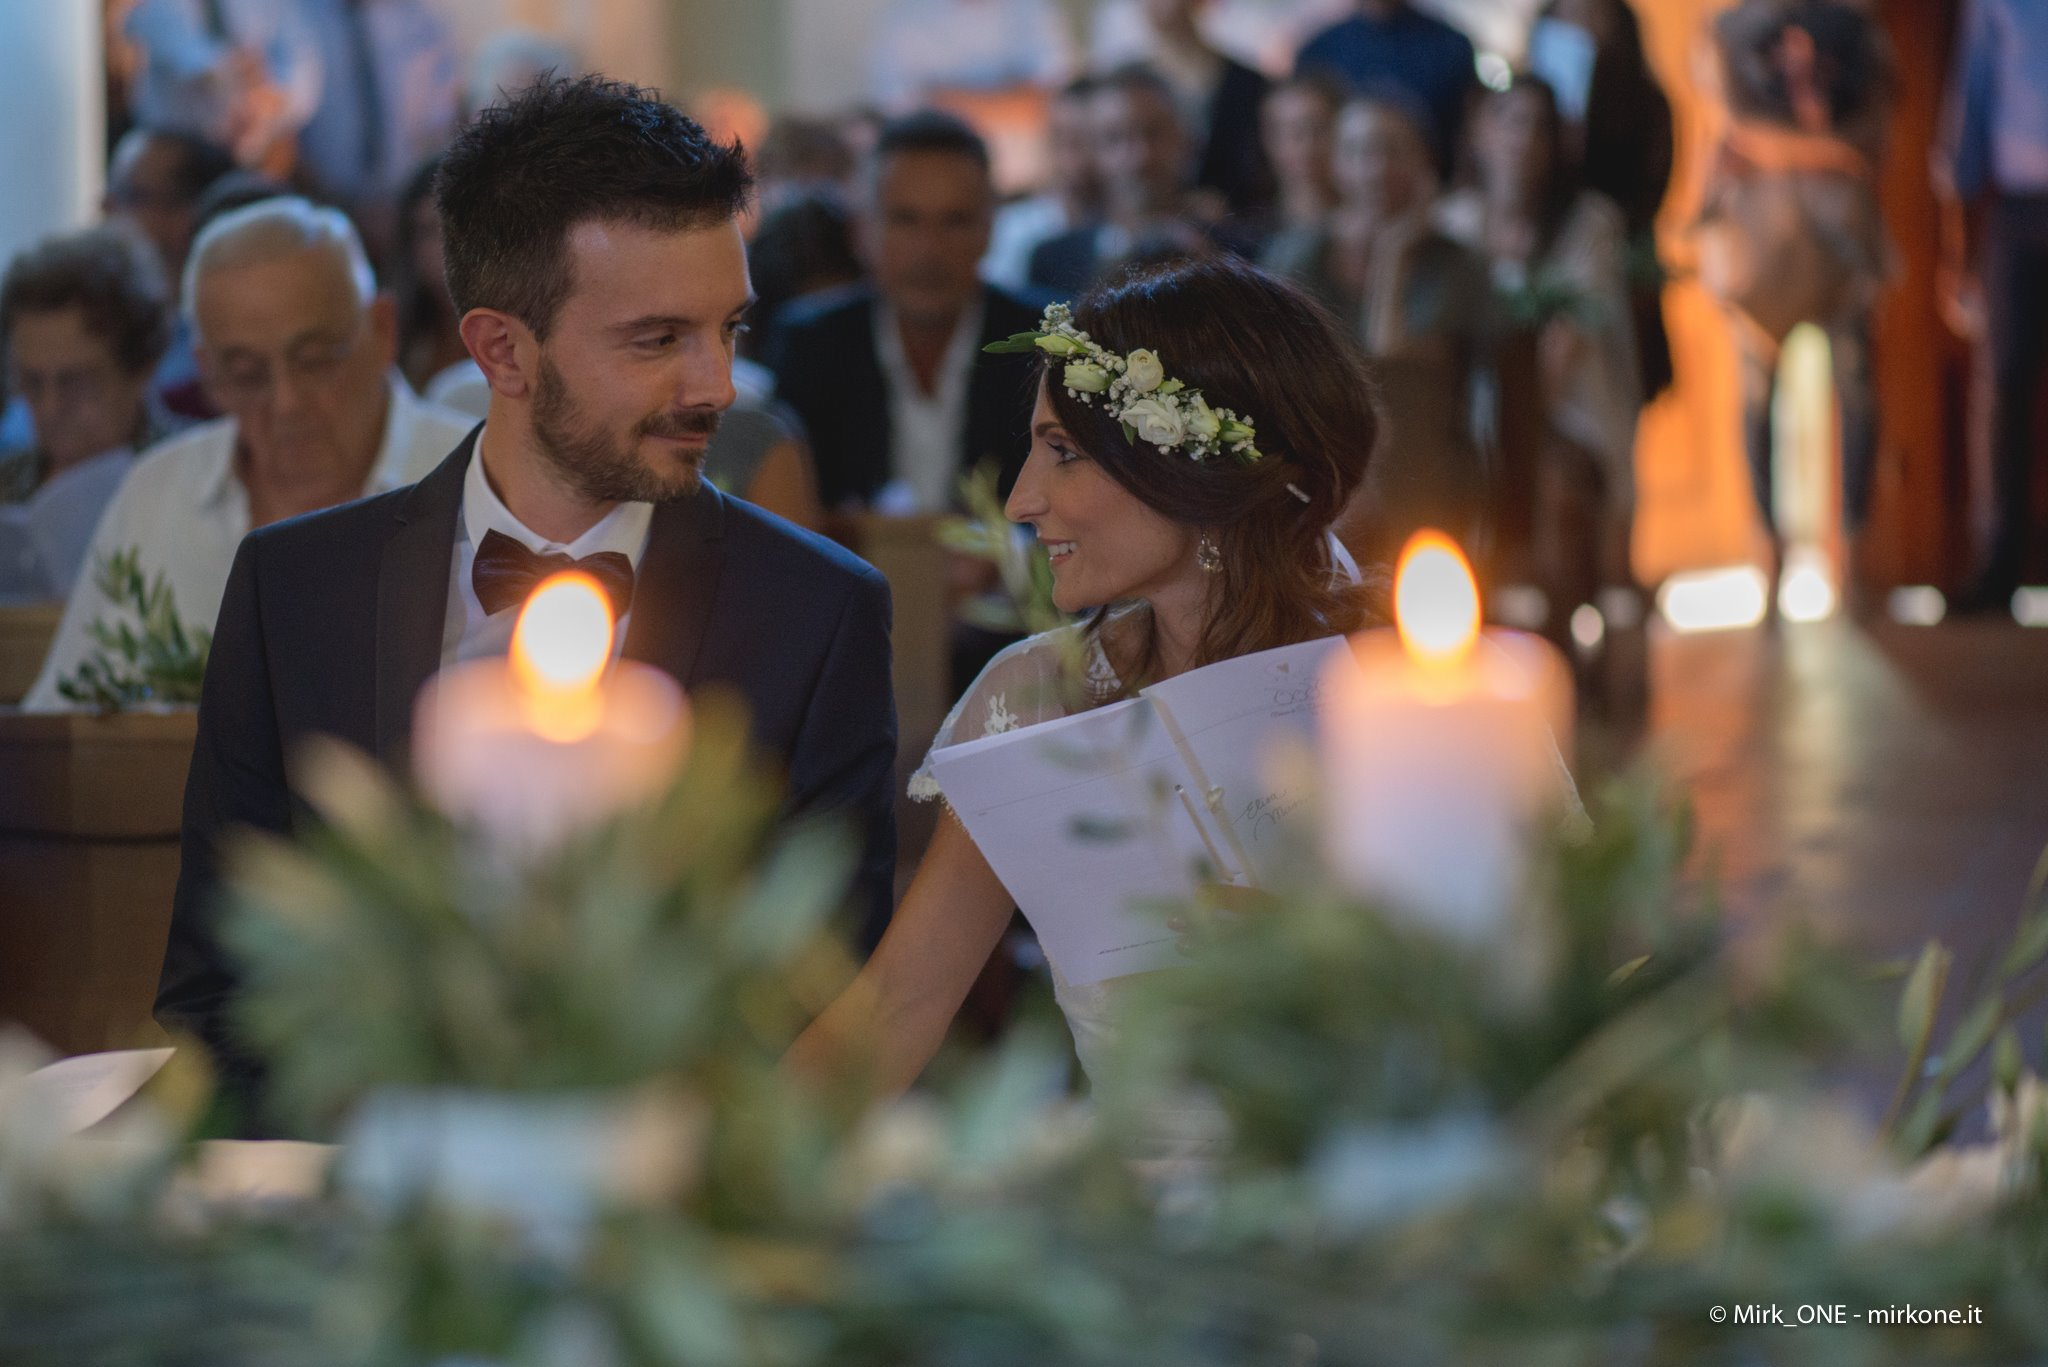 http://lnx.mirkone.it/wp-content/uploads/2015/07/mirk_ONE-fotografo-matrimonio-00882.jpg